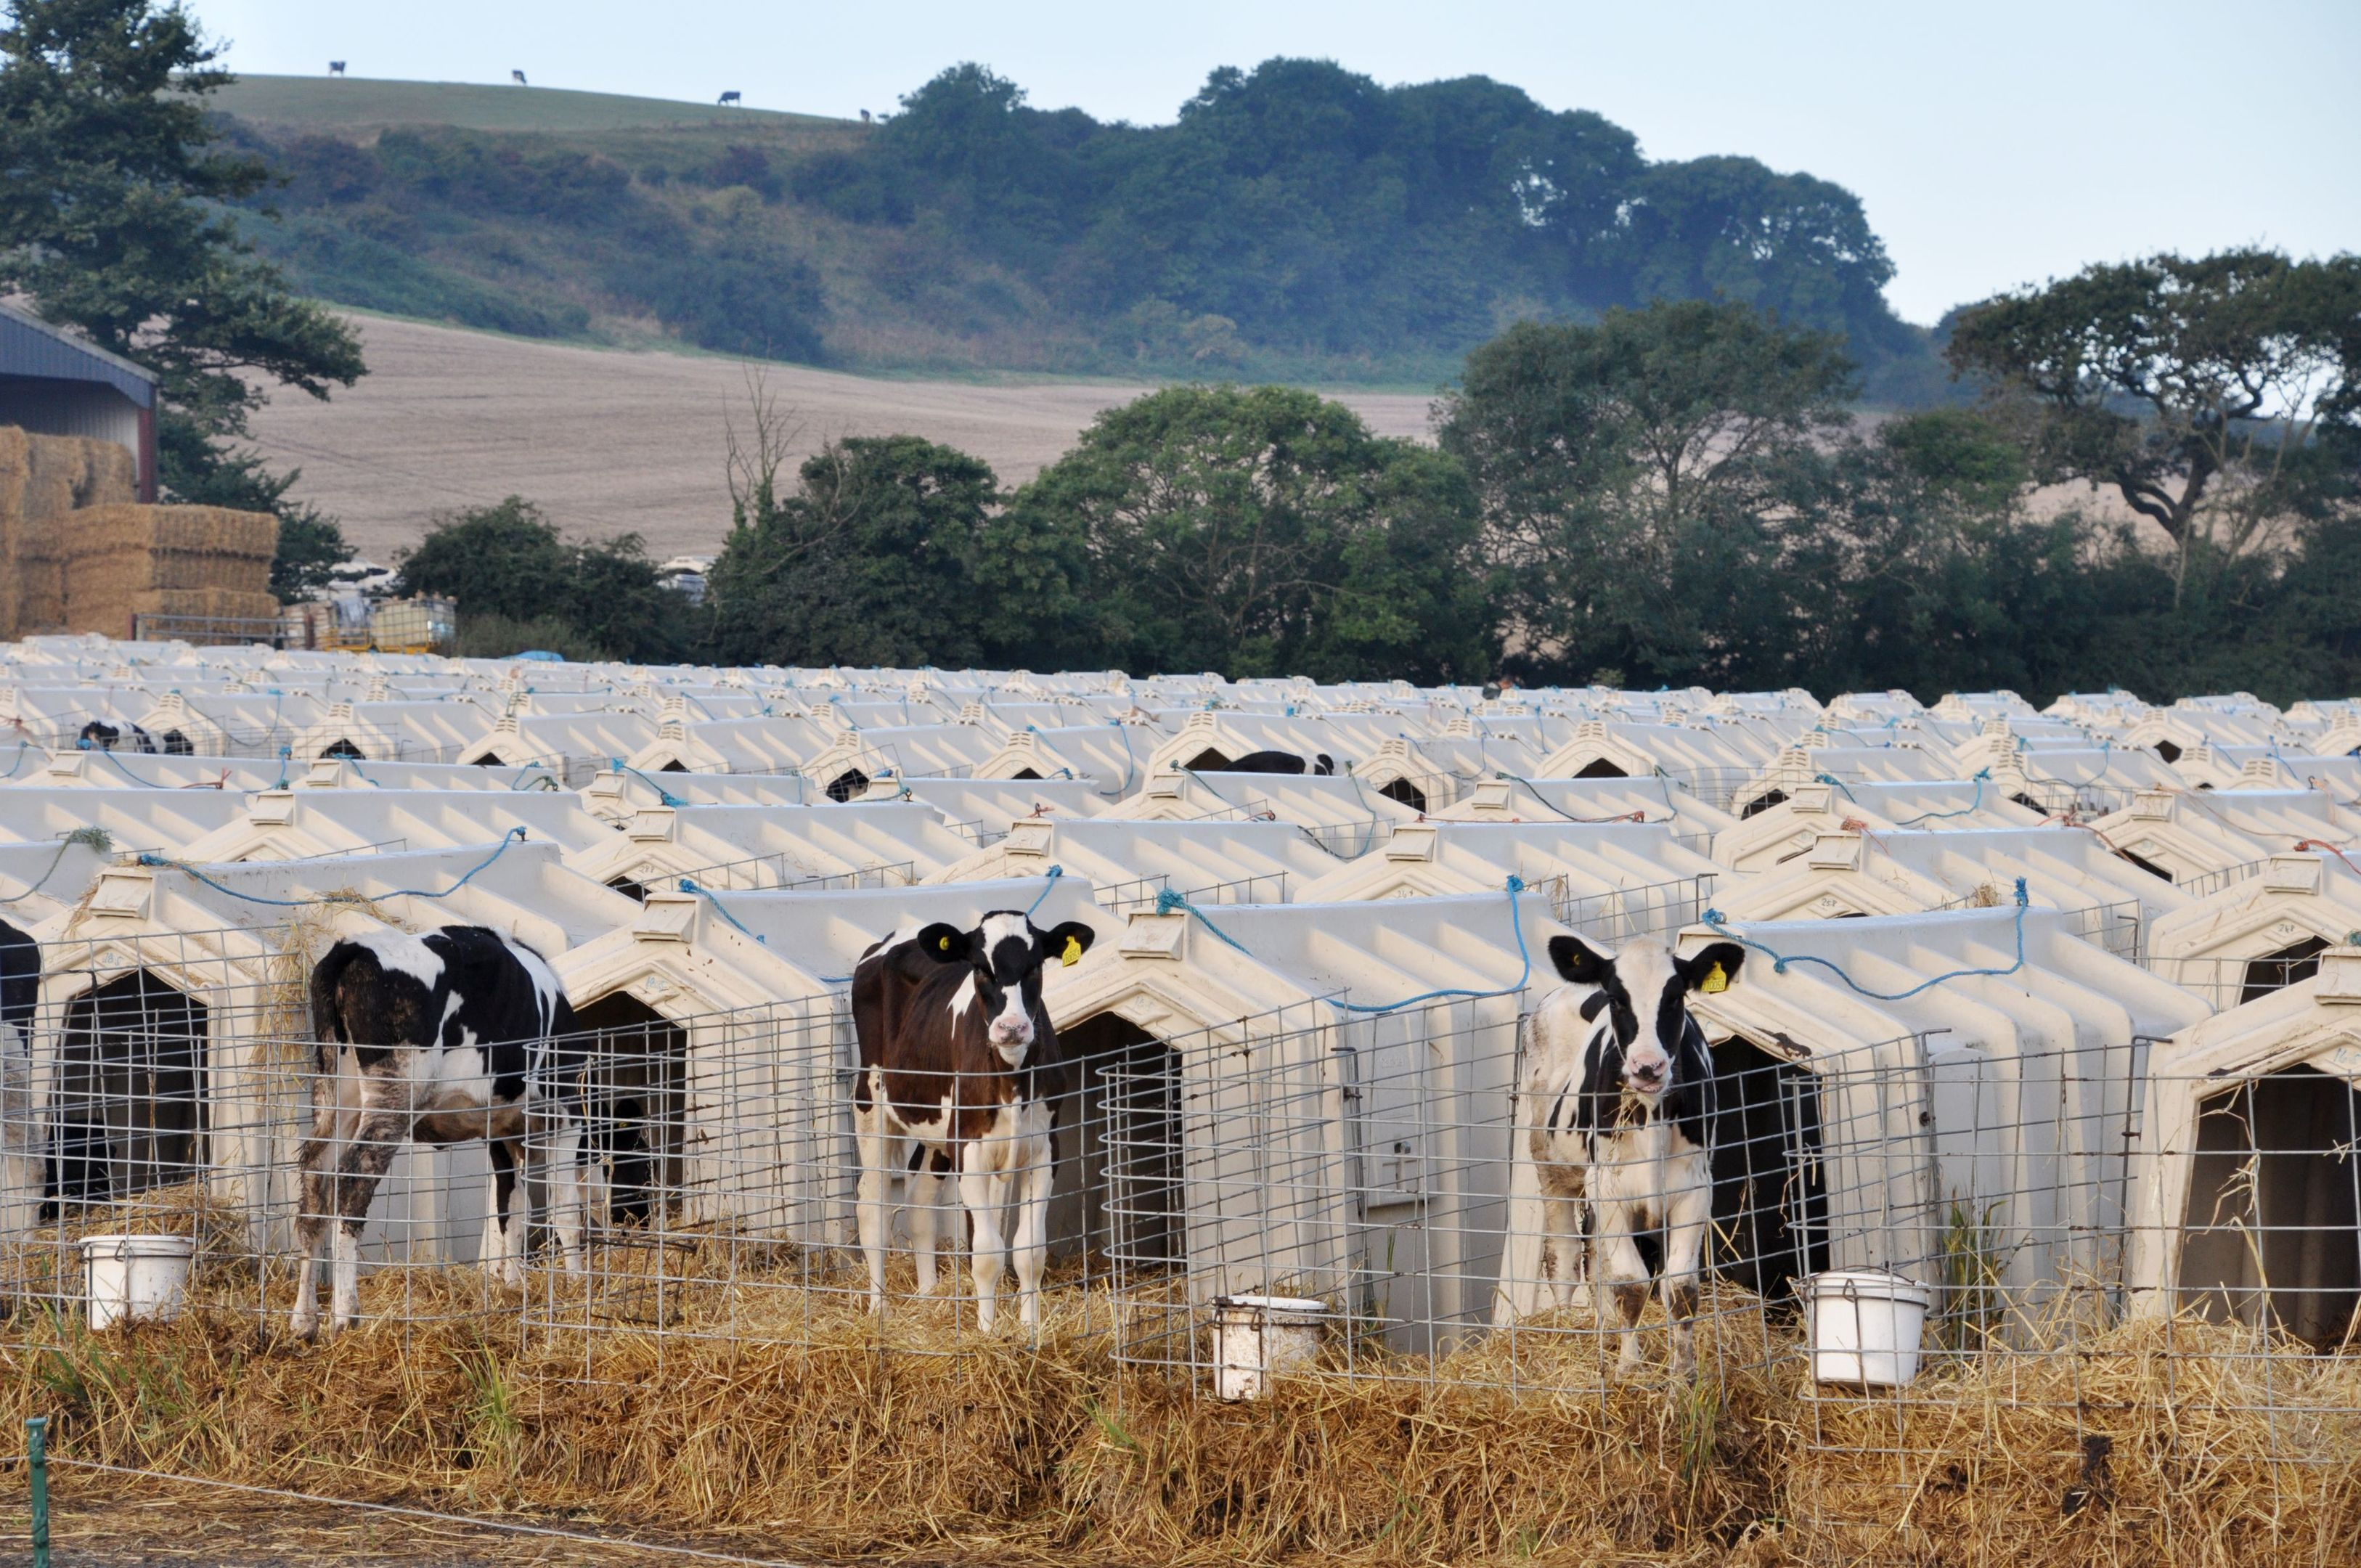 Calves penned in solitary hutches at Grange Dairy in East Chaldon, Dorset. (Animal Equality/PA Wire)